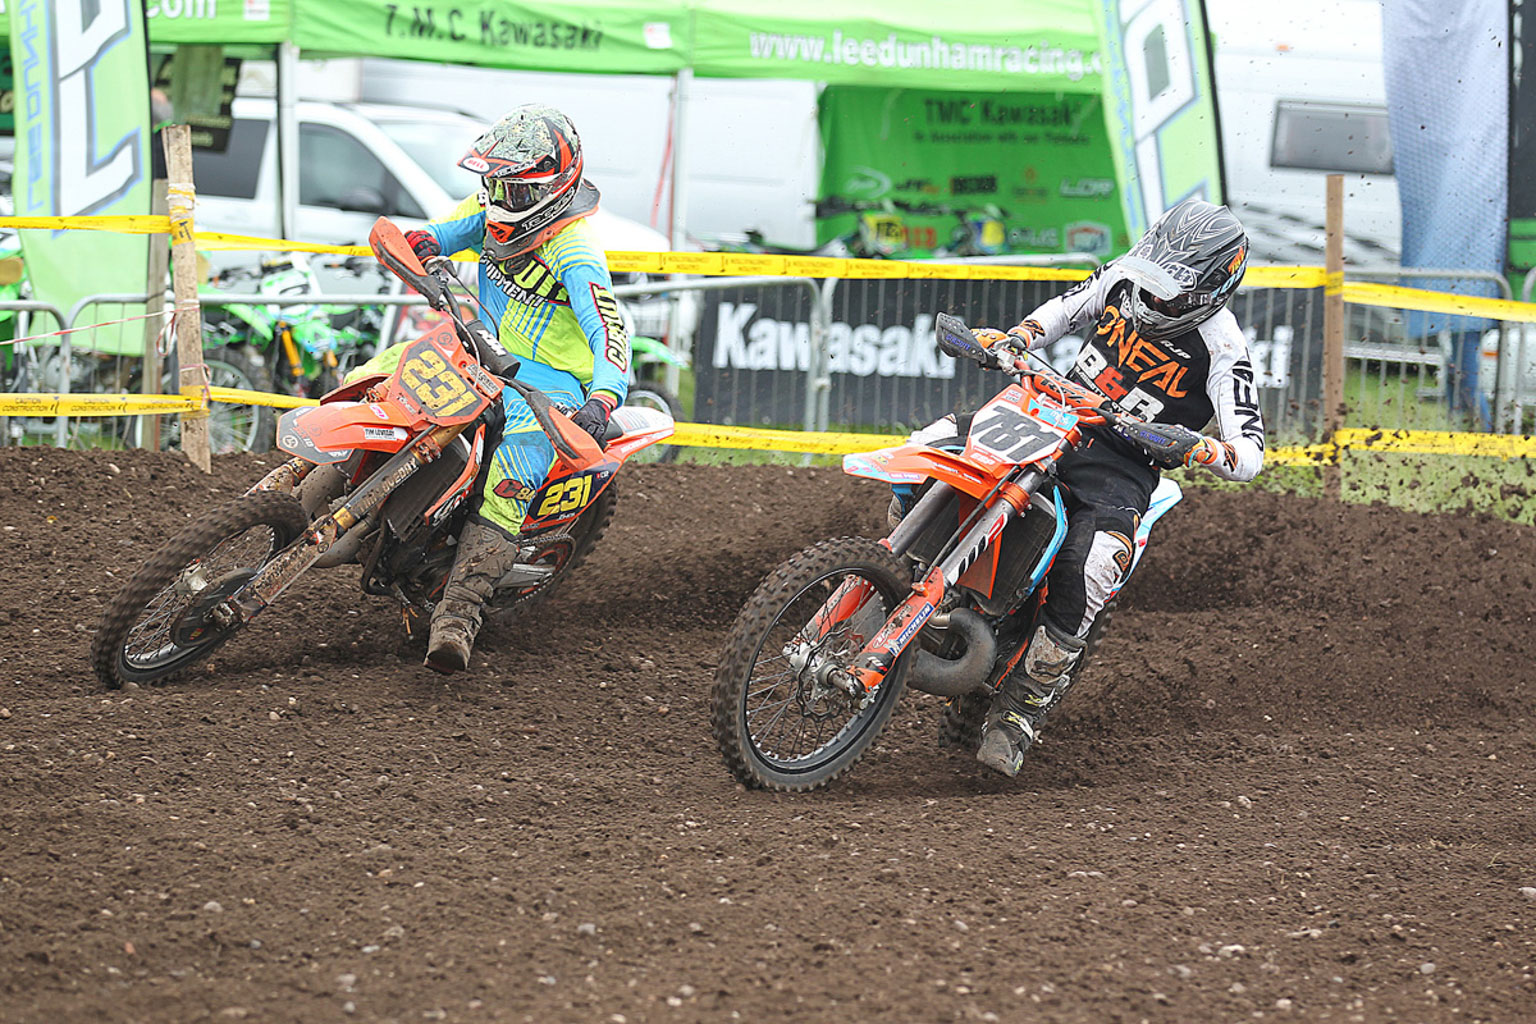 Rory Jones(231) and James Lane(781) in 2T action